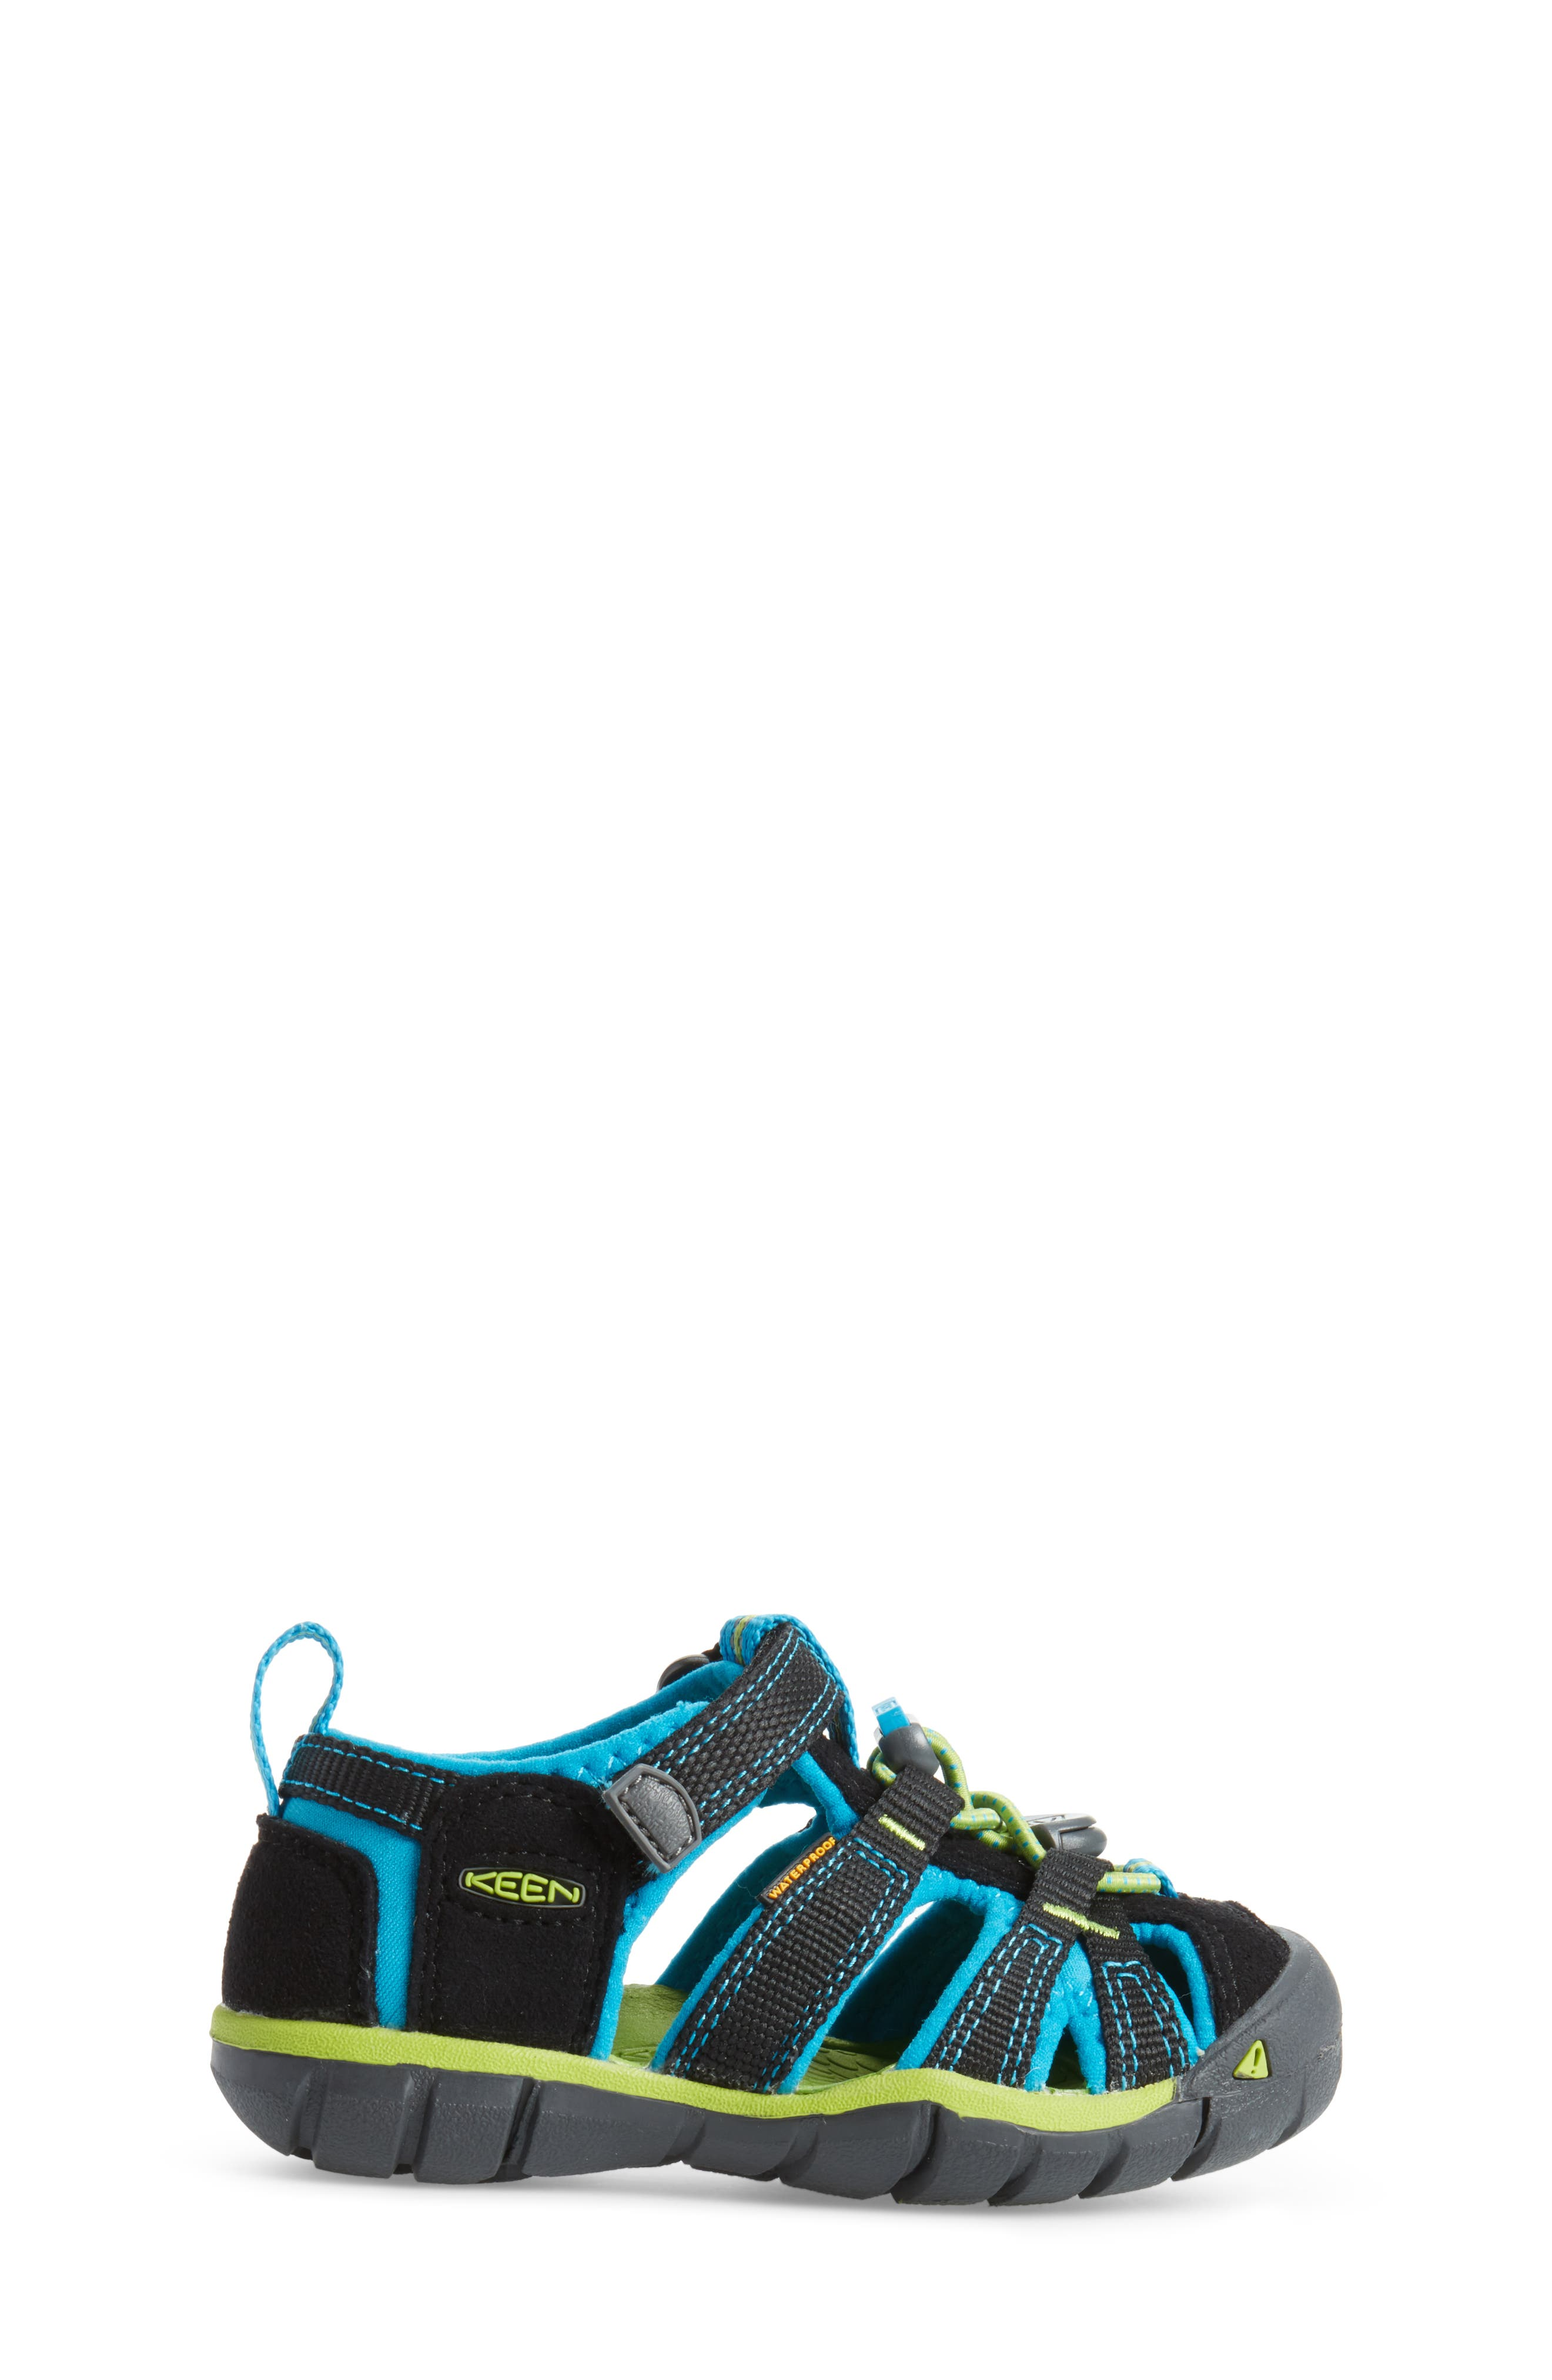 KEEN, 'Seacamp II' Water Friendly Sandal, Alternate thumbnail 3, color, BLACK/ BLUE DANUBE